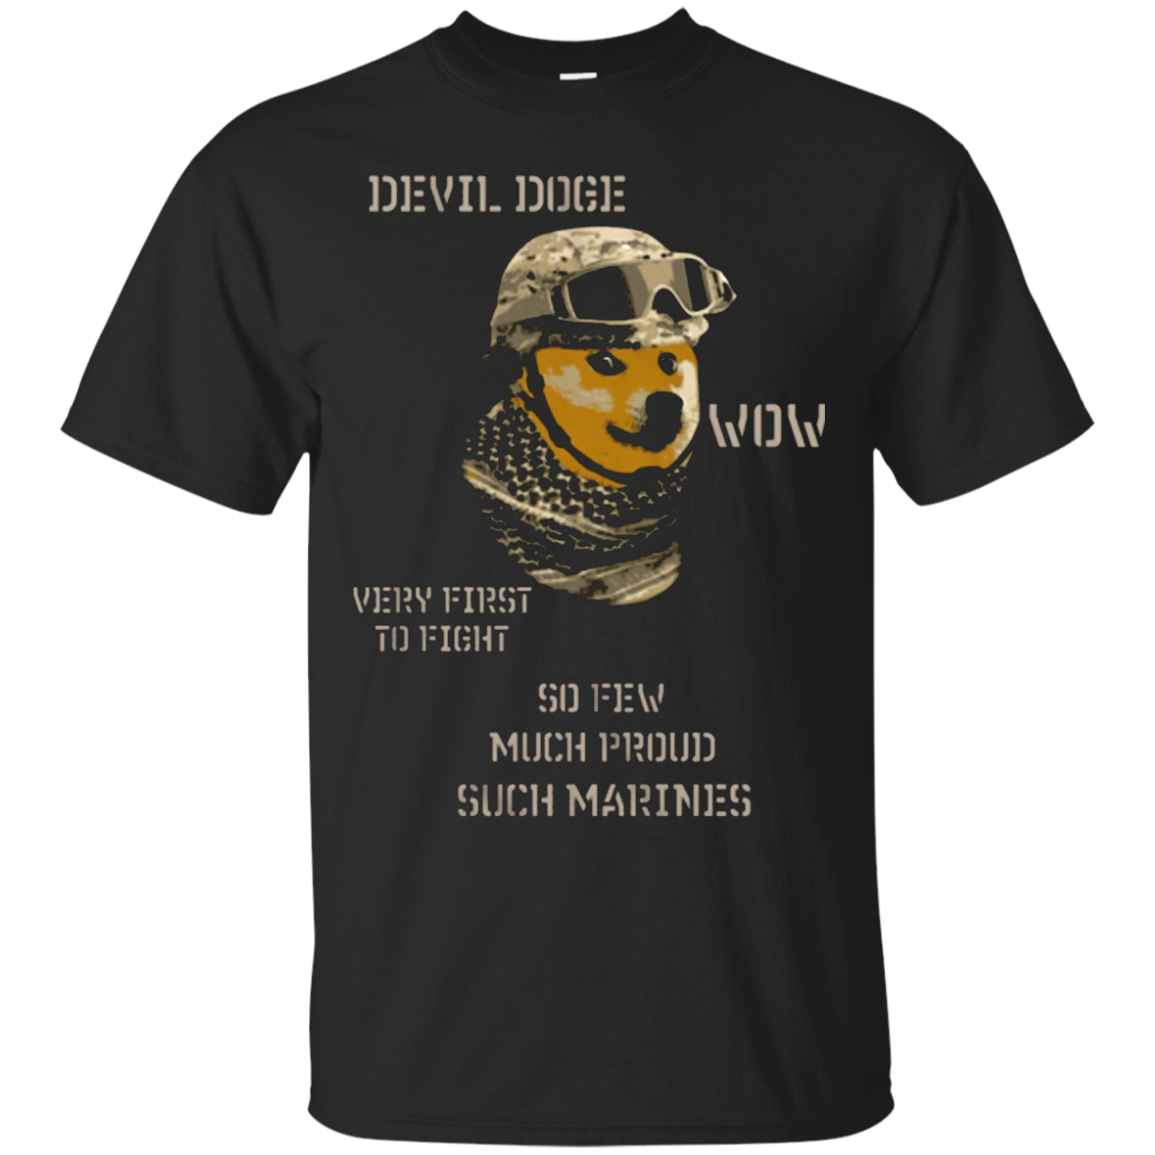 Devil Doge wow verry first to fight so few much pround such